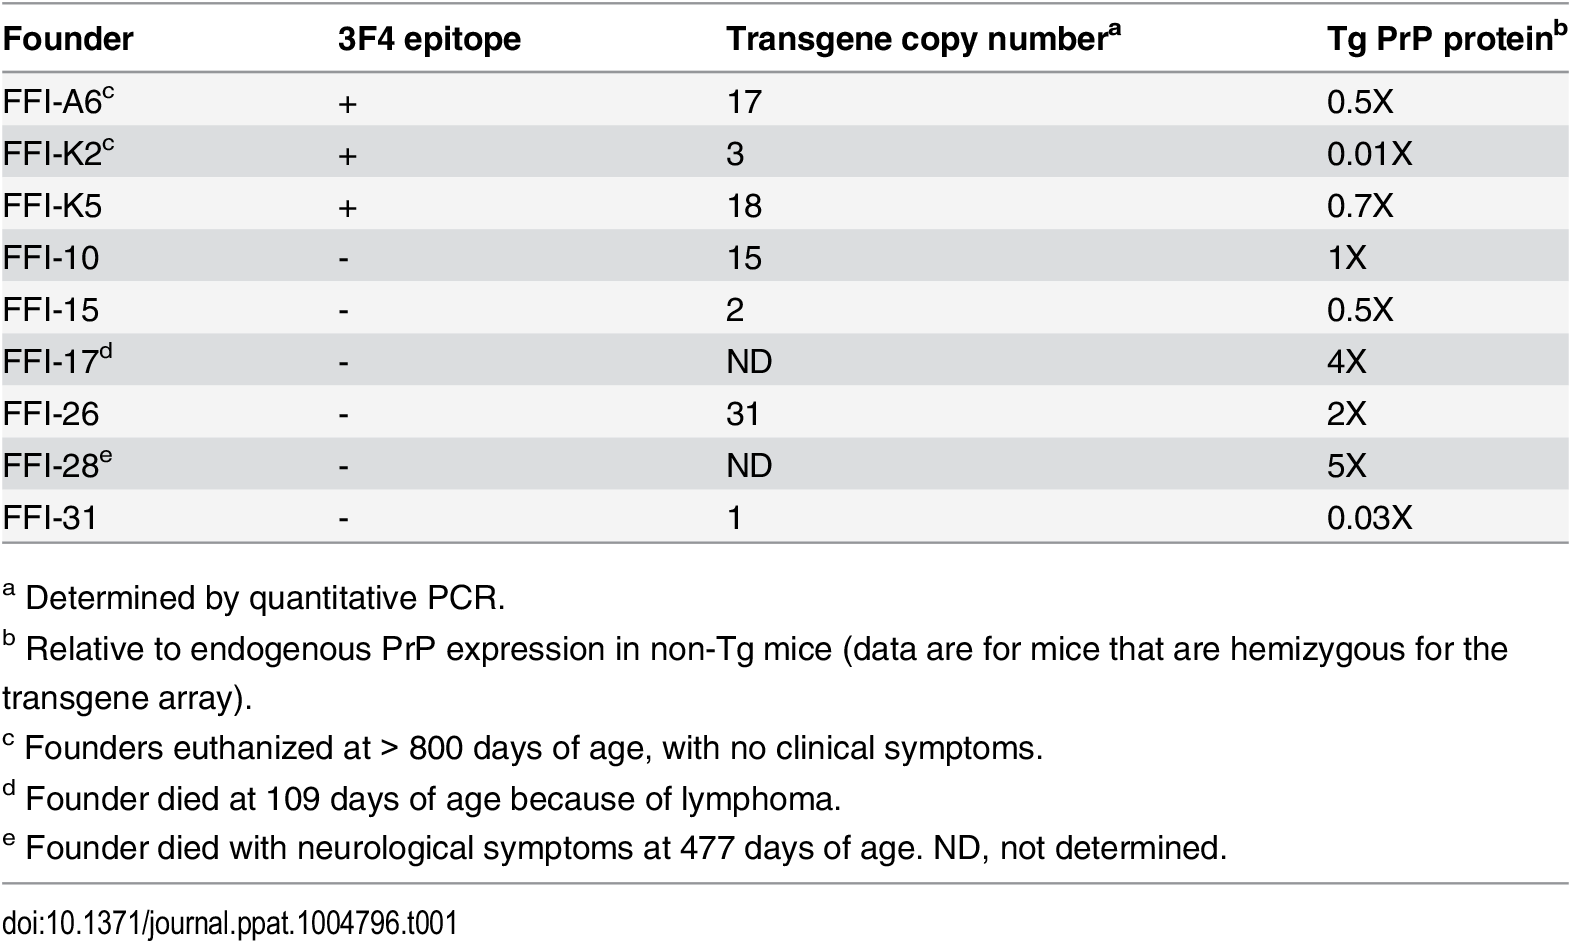 Characteristics of founders carrying the D177N/M128 transgene.